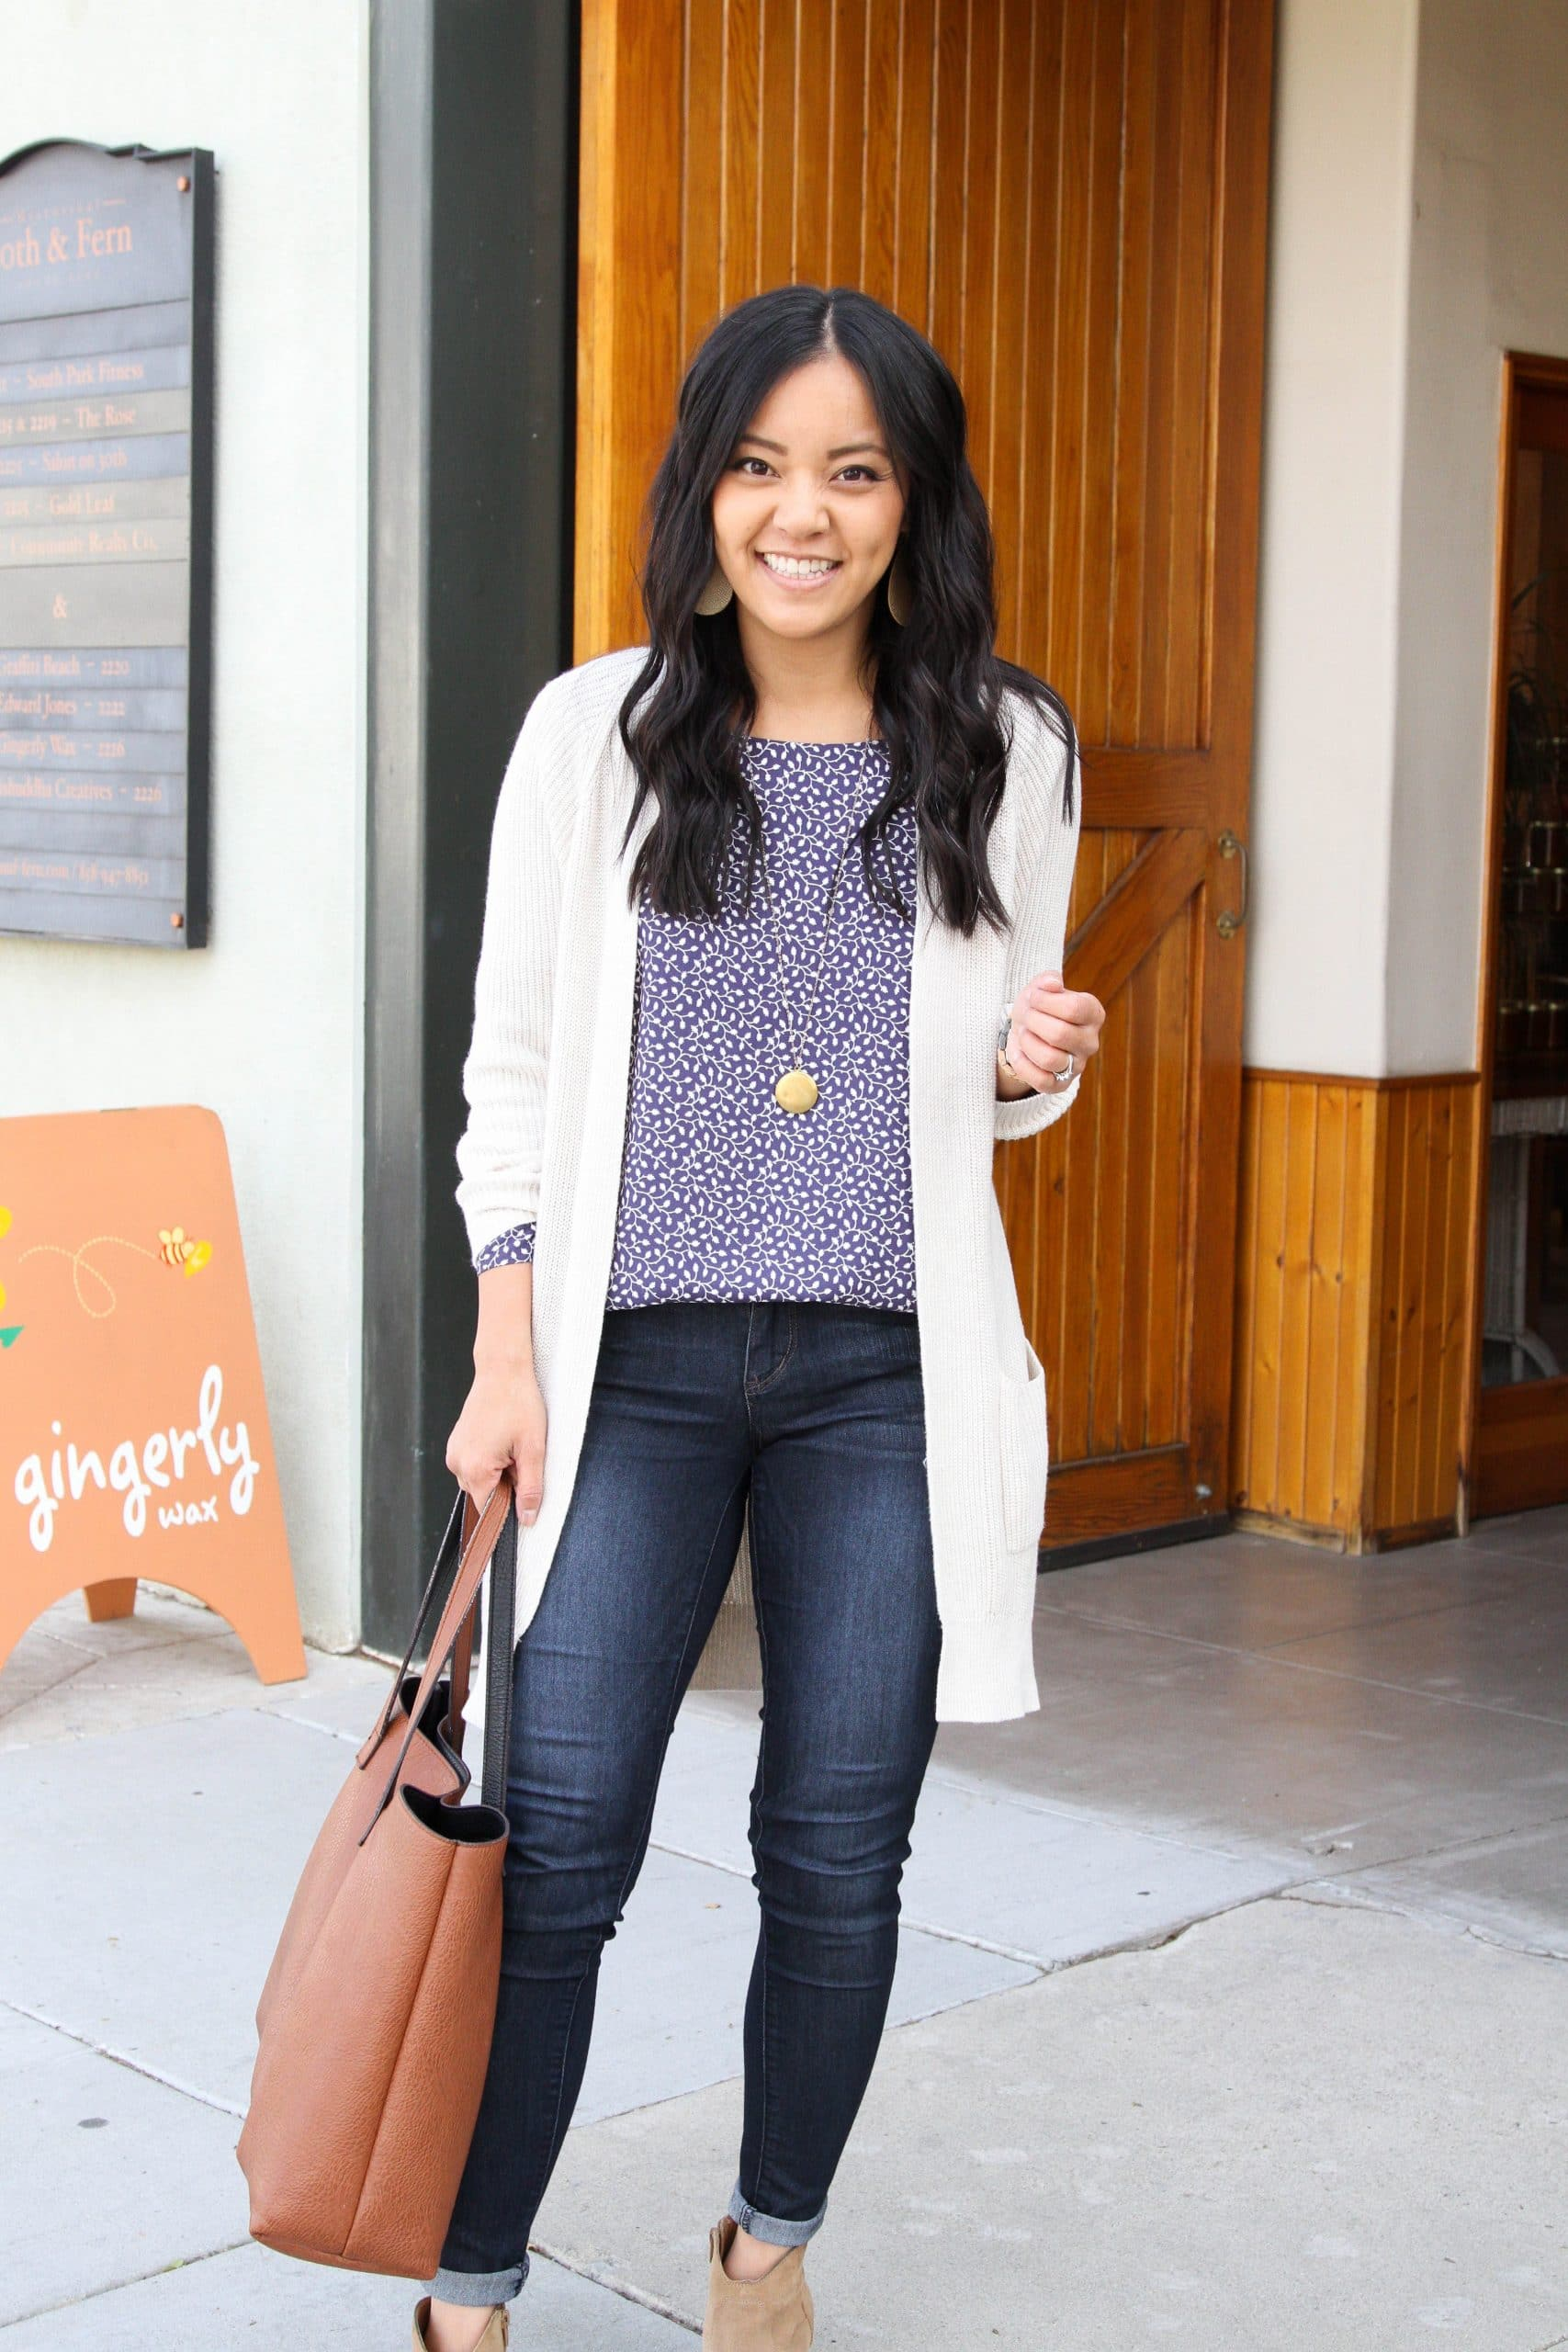 Winter to Spring Transitional Outfit: skinny jeans + navy printed blouse + tan suede booties + long cream cardigan + gold leather earrings + cognac leather tote bag + long gold disc pendant necklace